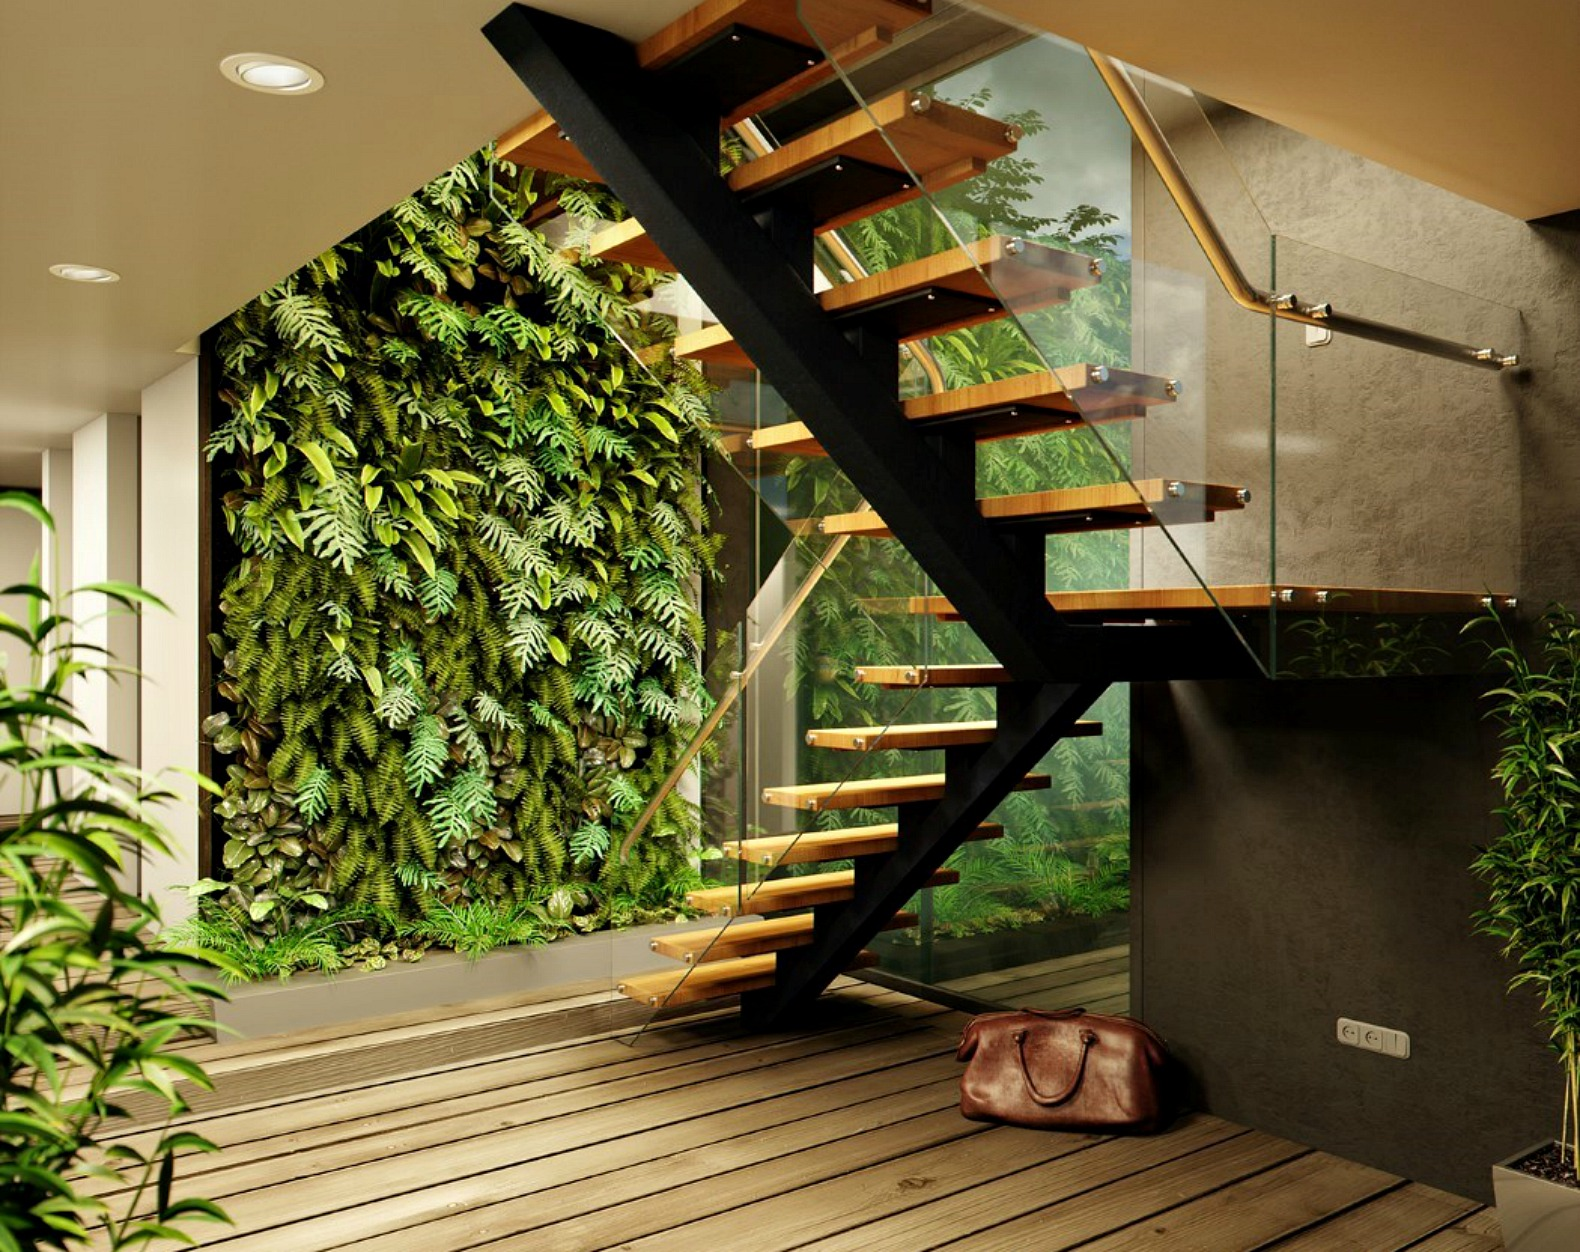 Greenhouse-like \'cabin in the woods\' features lush vertical gardens ...